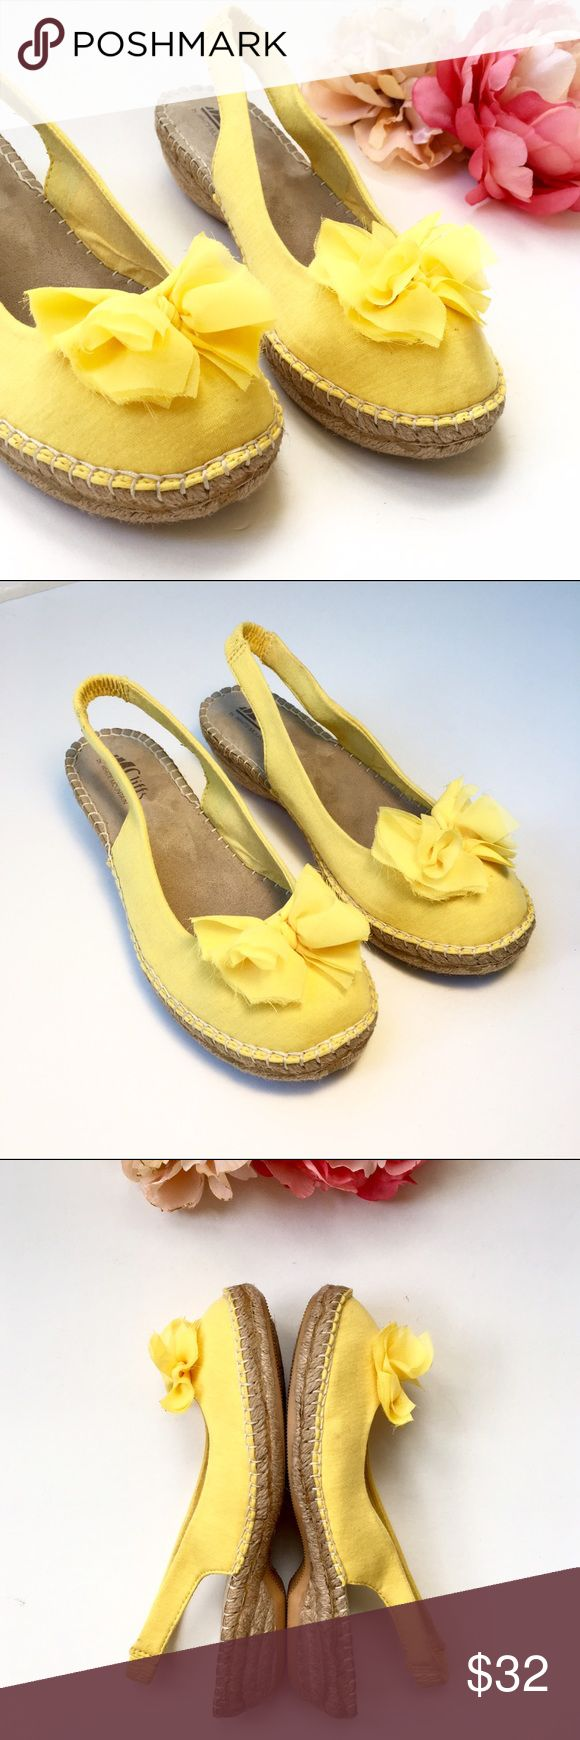 White Mountain Cheerful Sling-back Espadrille Shoe More details to come soon...Bright yellow. Size 8.5. Stretch Canvas. White Mountain Shoes Espadrilles